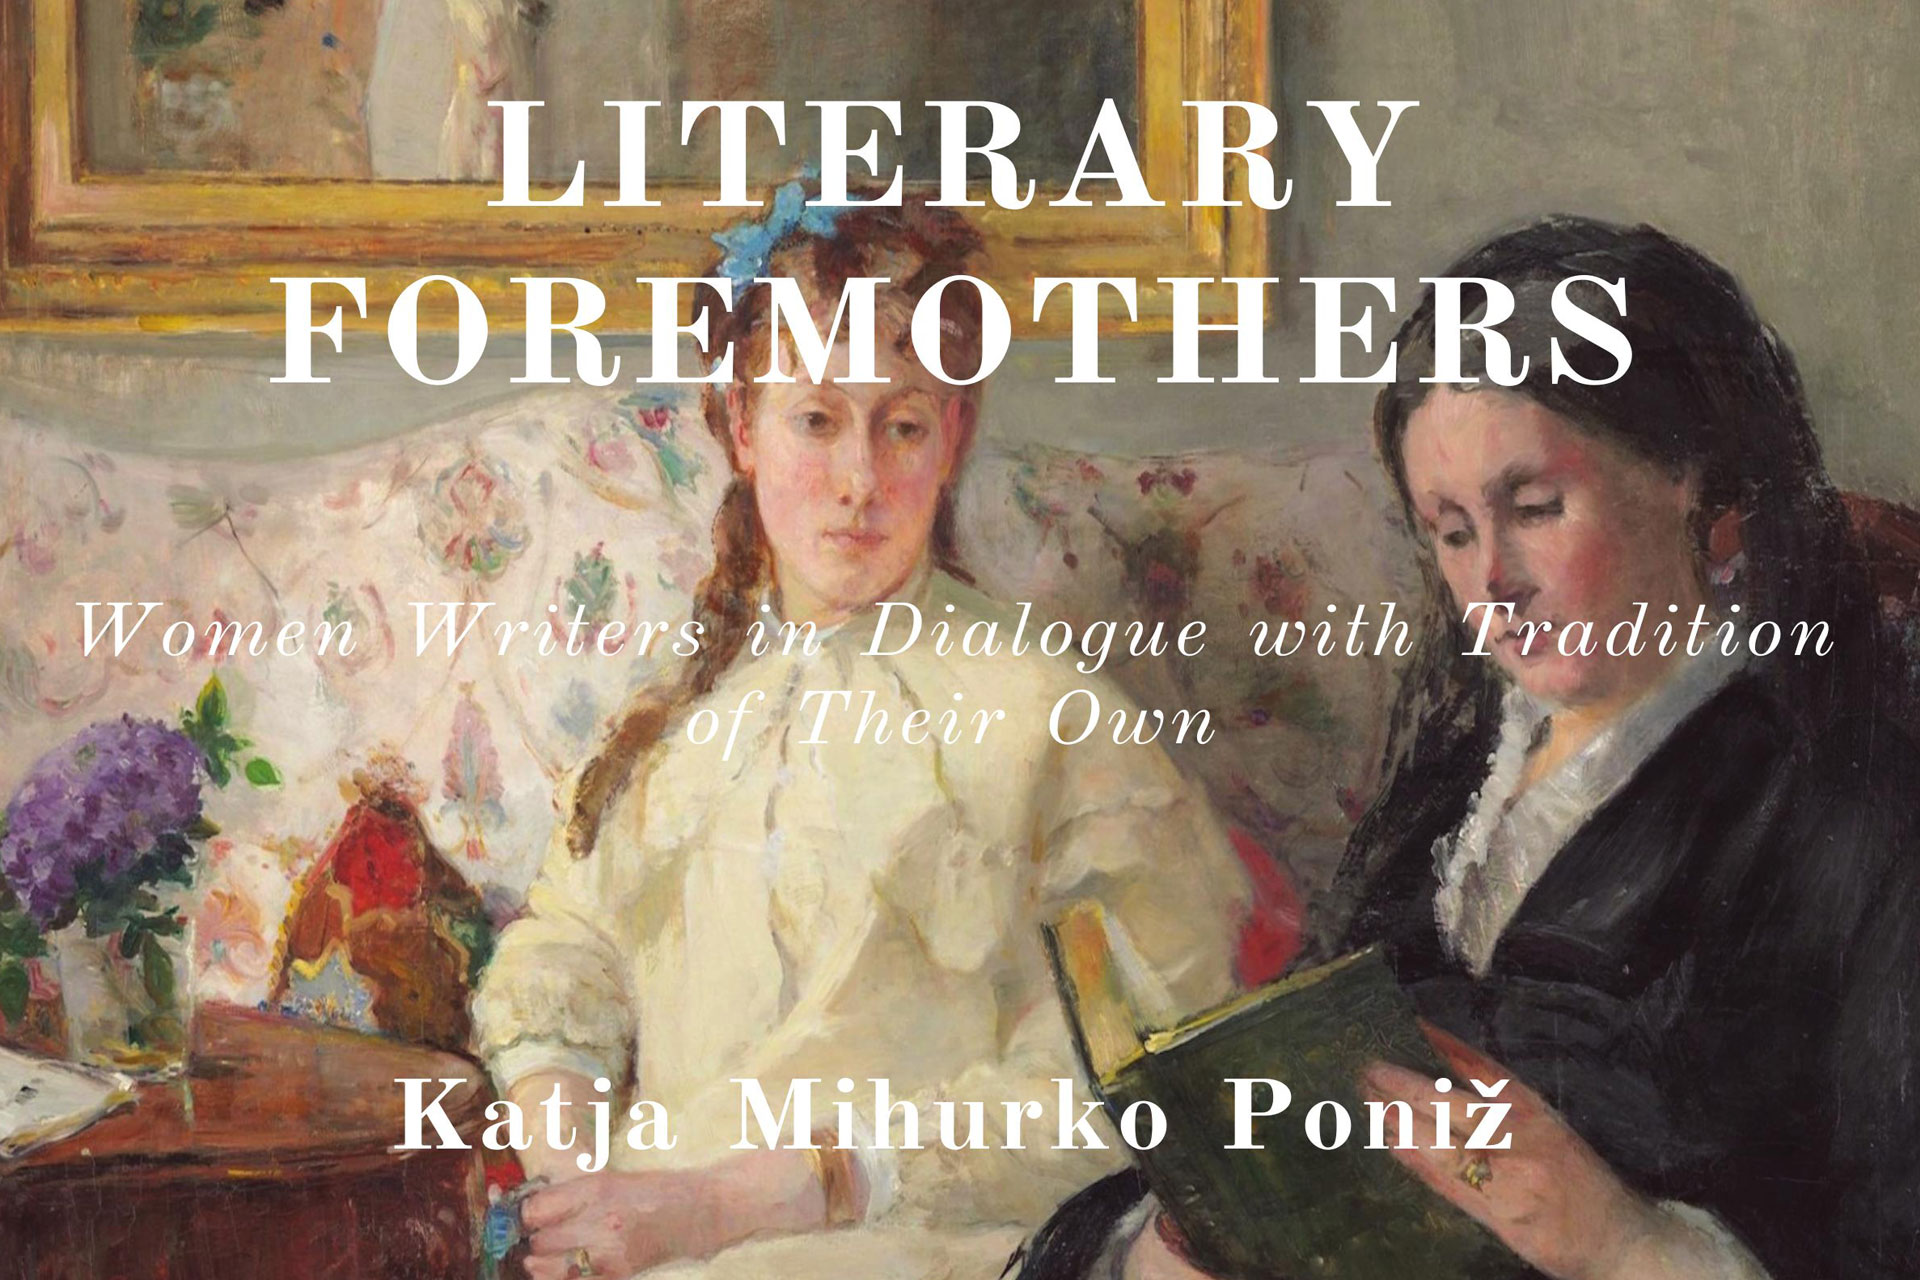 meet-your-literary-formothers